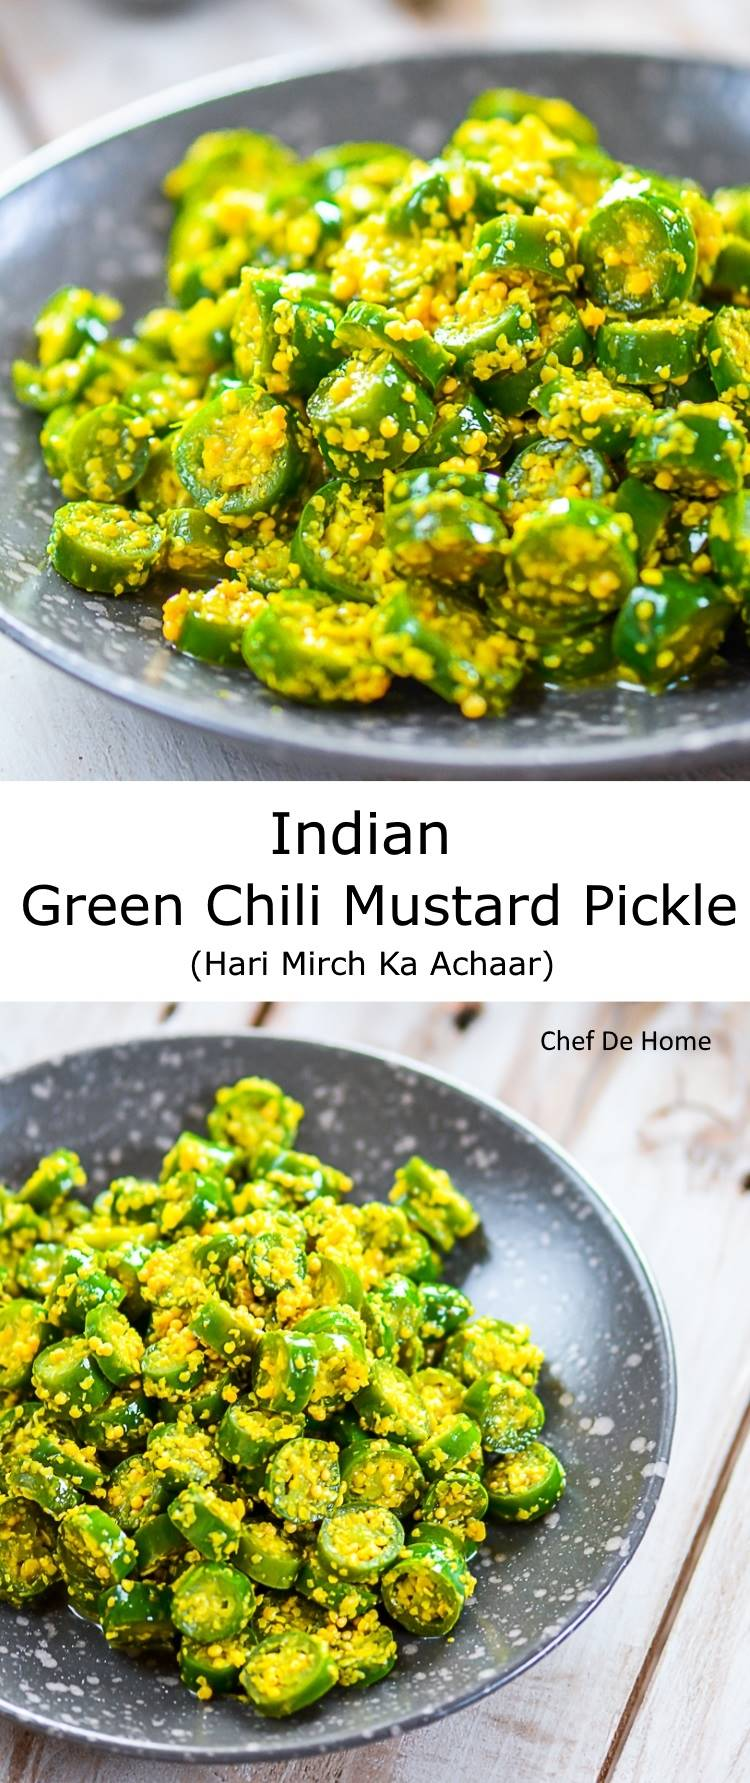 Indian Green Chili Pickle in mustard and lemons | Hari Mirch Ka Achaar | chefdehome.com